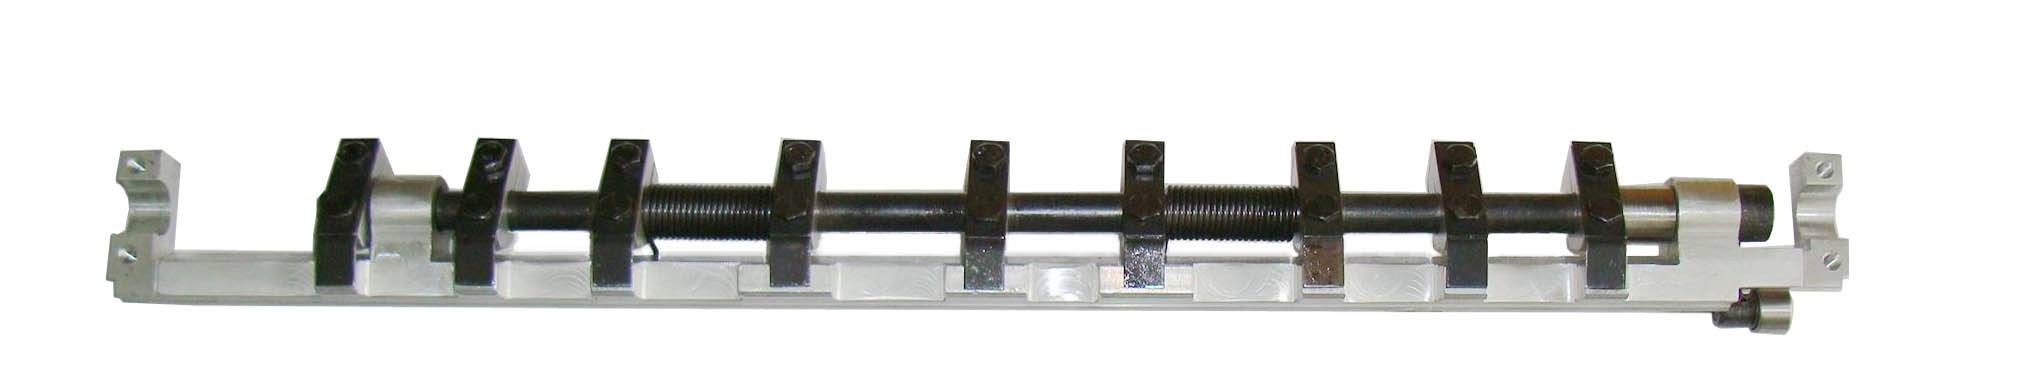 spare part for Heidelberg GTO printing machine, gripper bar assembly for Heidelberg printer